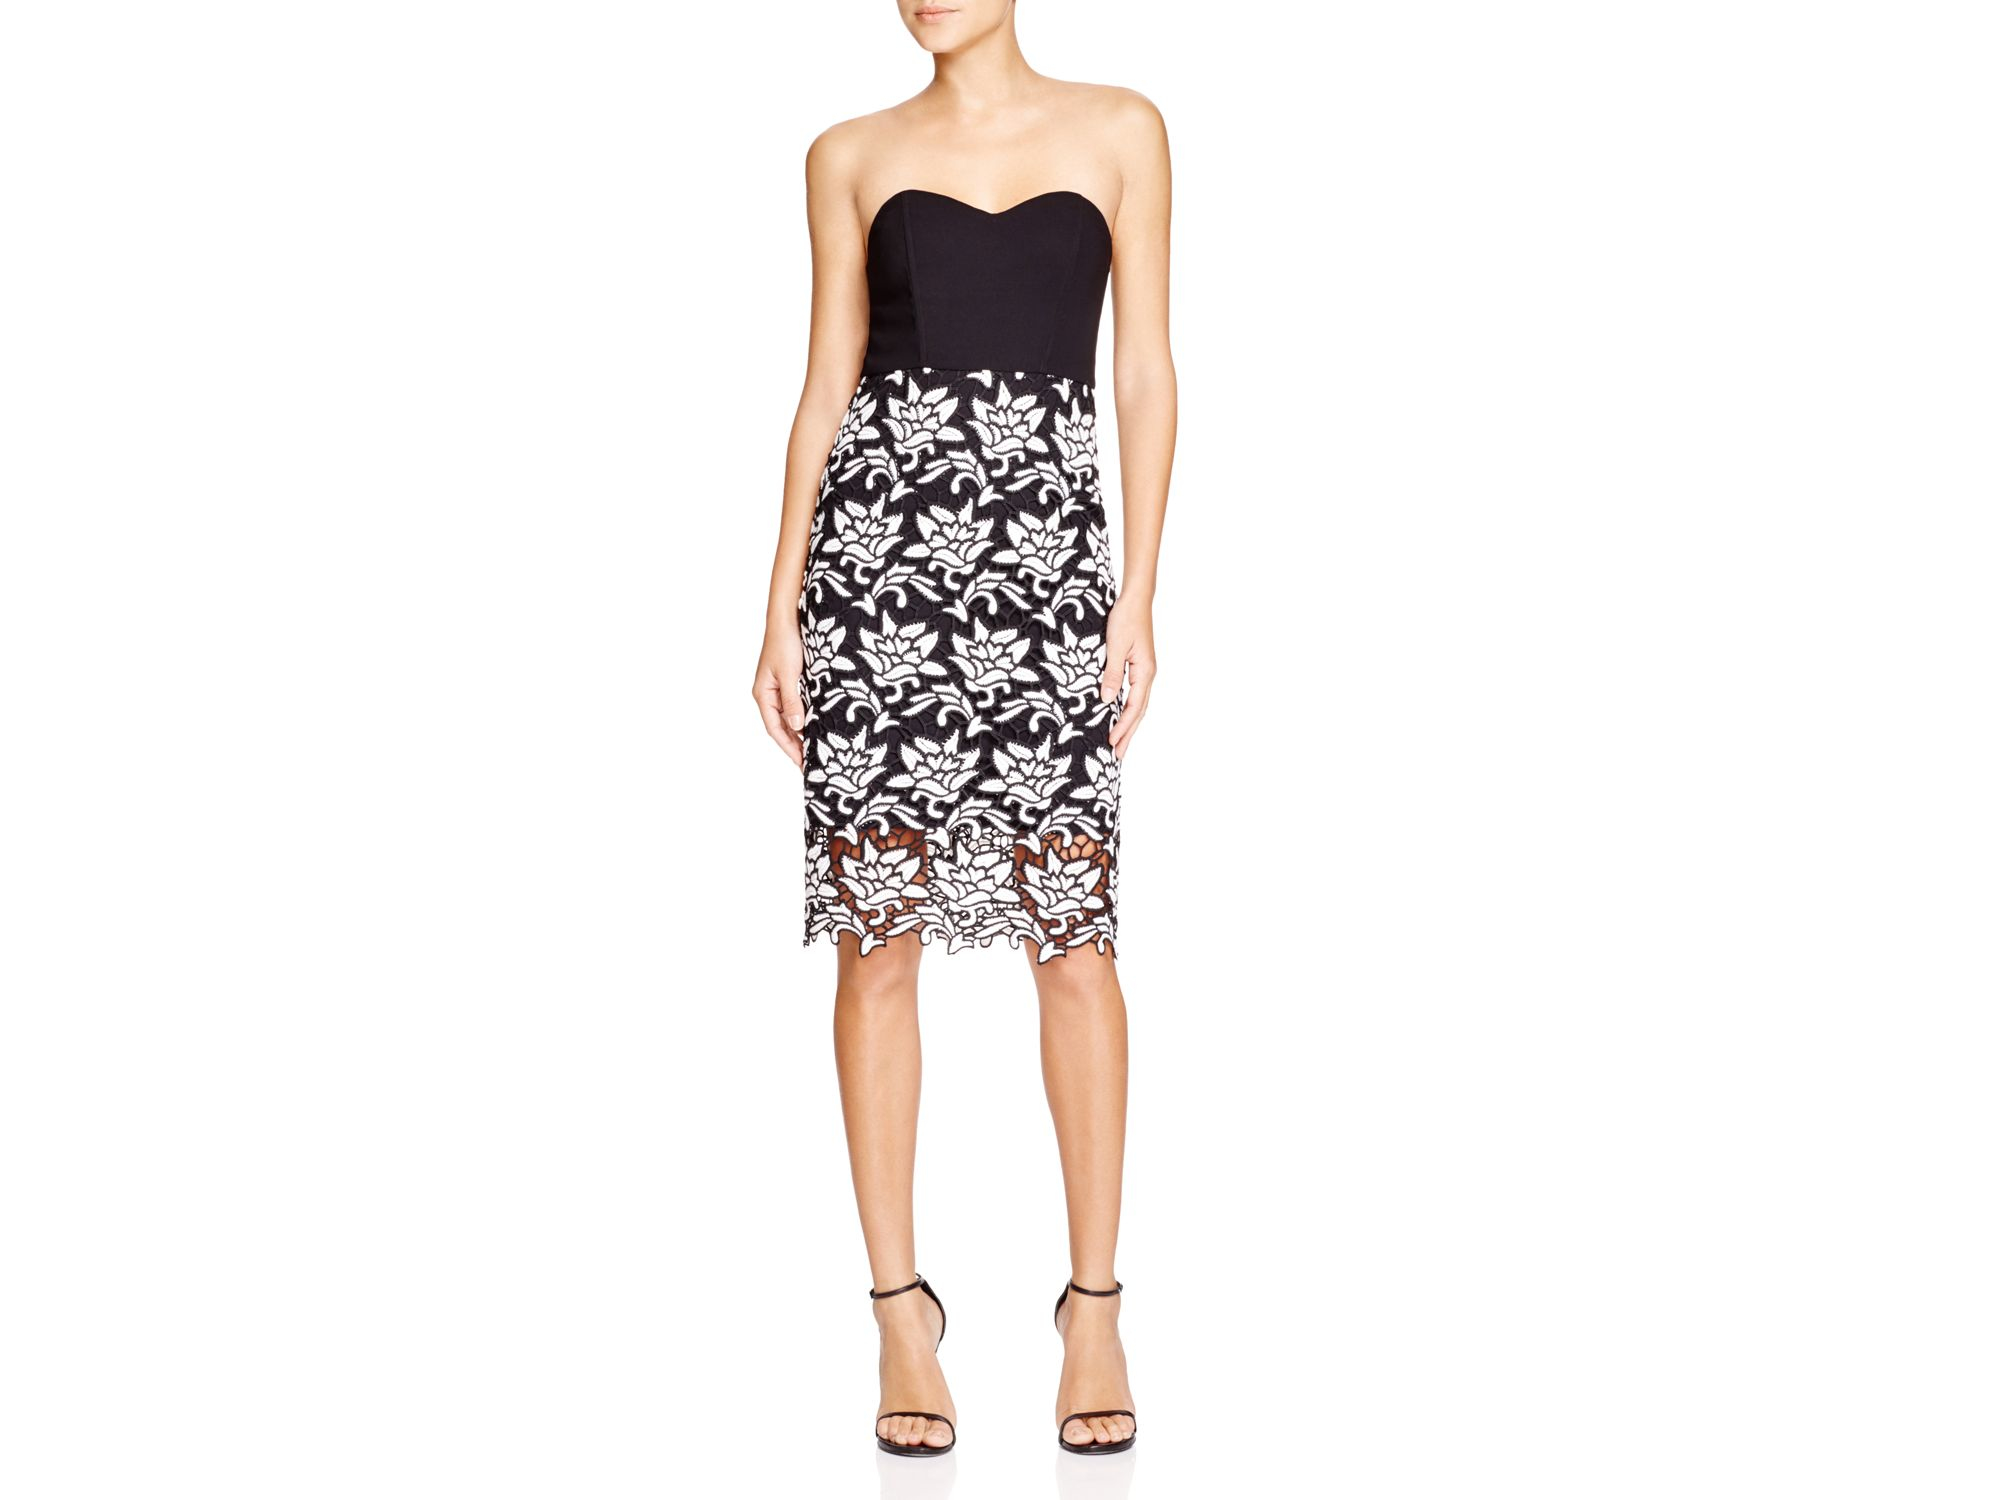 793bbcc27b Lyst - JOA Knit And Lace Strapless Dress - Bloomingdale s Exclusive ...